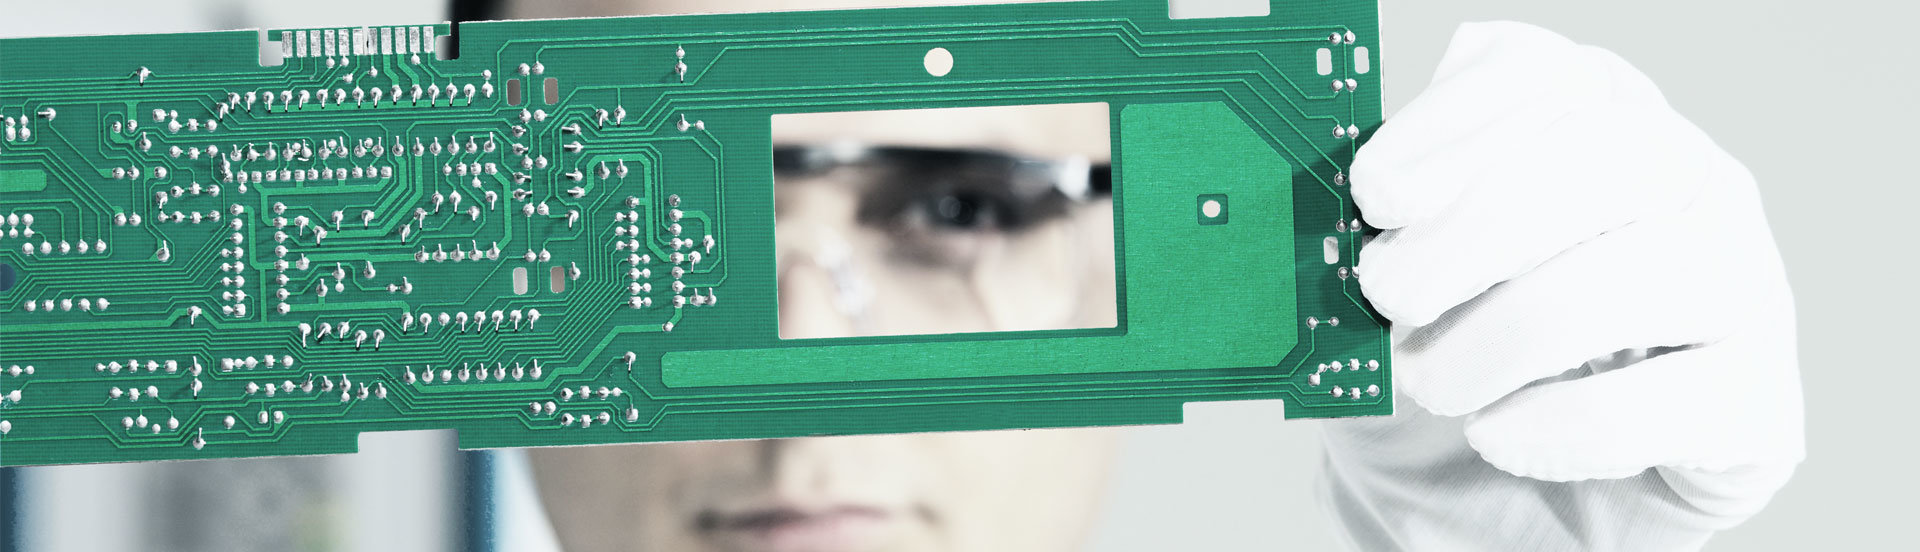 Sycotec Gmbh Co Kg Pcb Processing Printed Circuit Boards Manufacturer High Technology Solutions